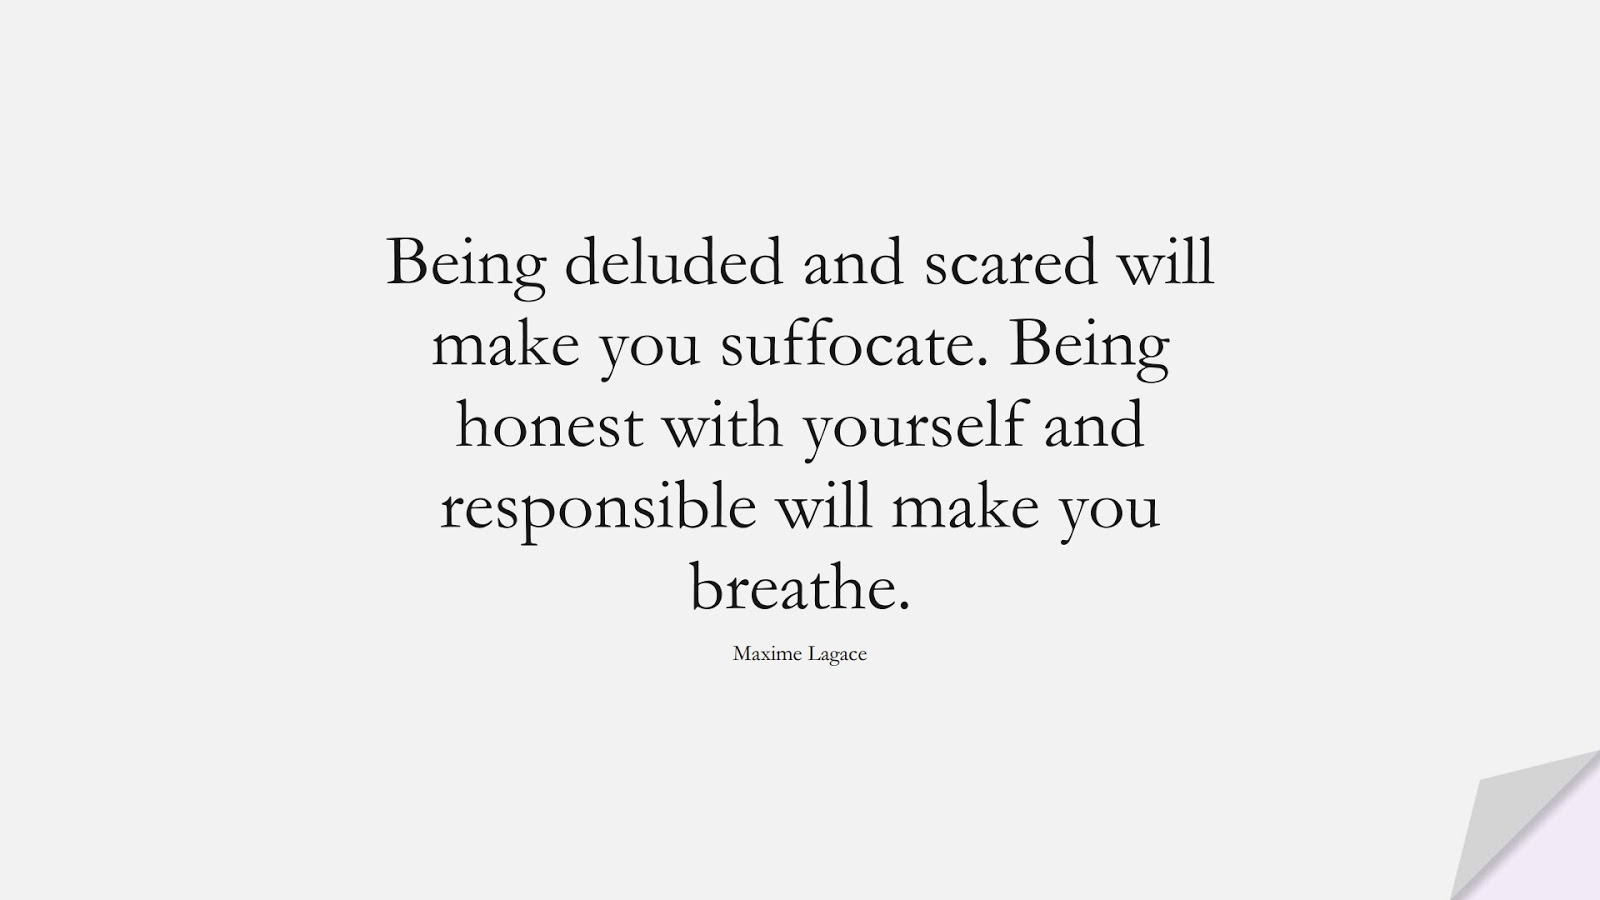 Being deluded and scared will make you suffocate. Being honest with yourself and responsible will make you breathe. (Maxime Lagace);  #DepressionQuotes